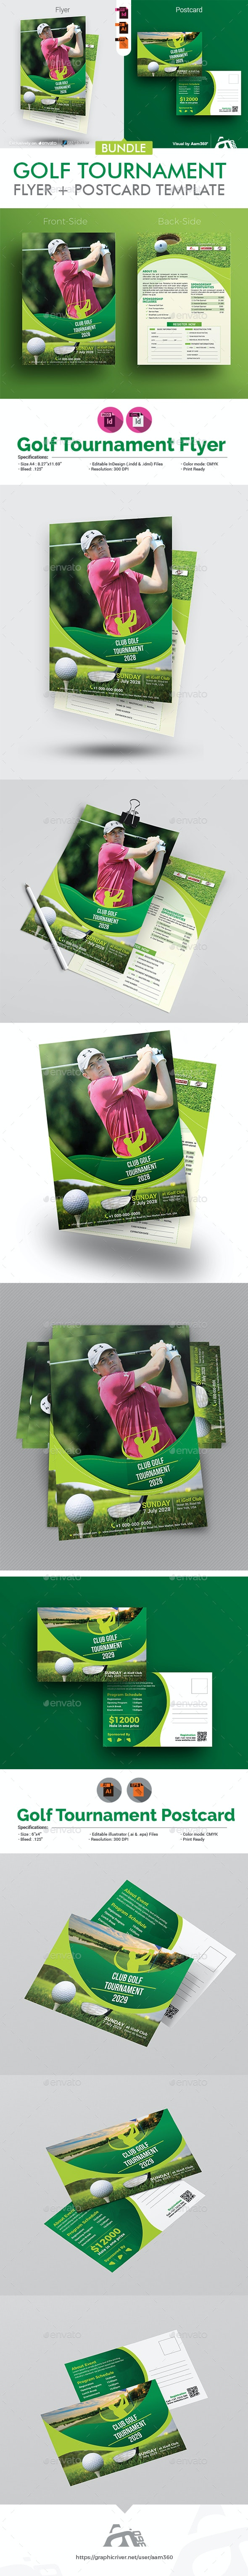 Golf Tournament Flyer with Rollup Bundle - Sports Events